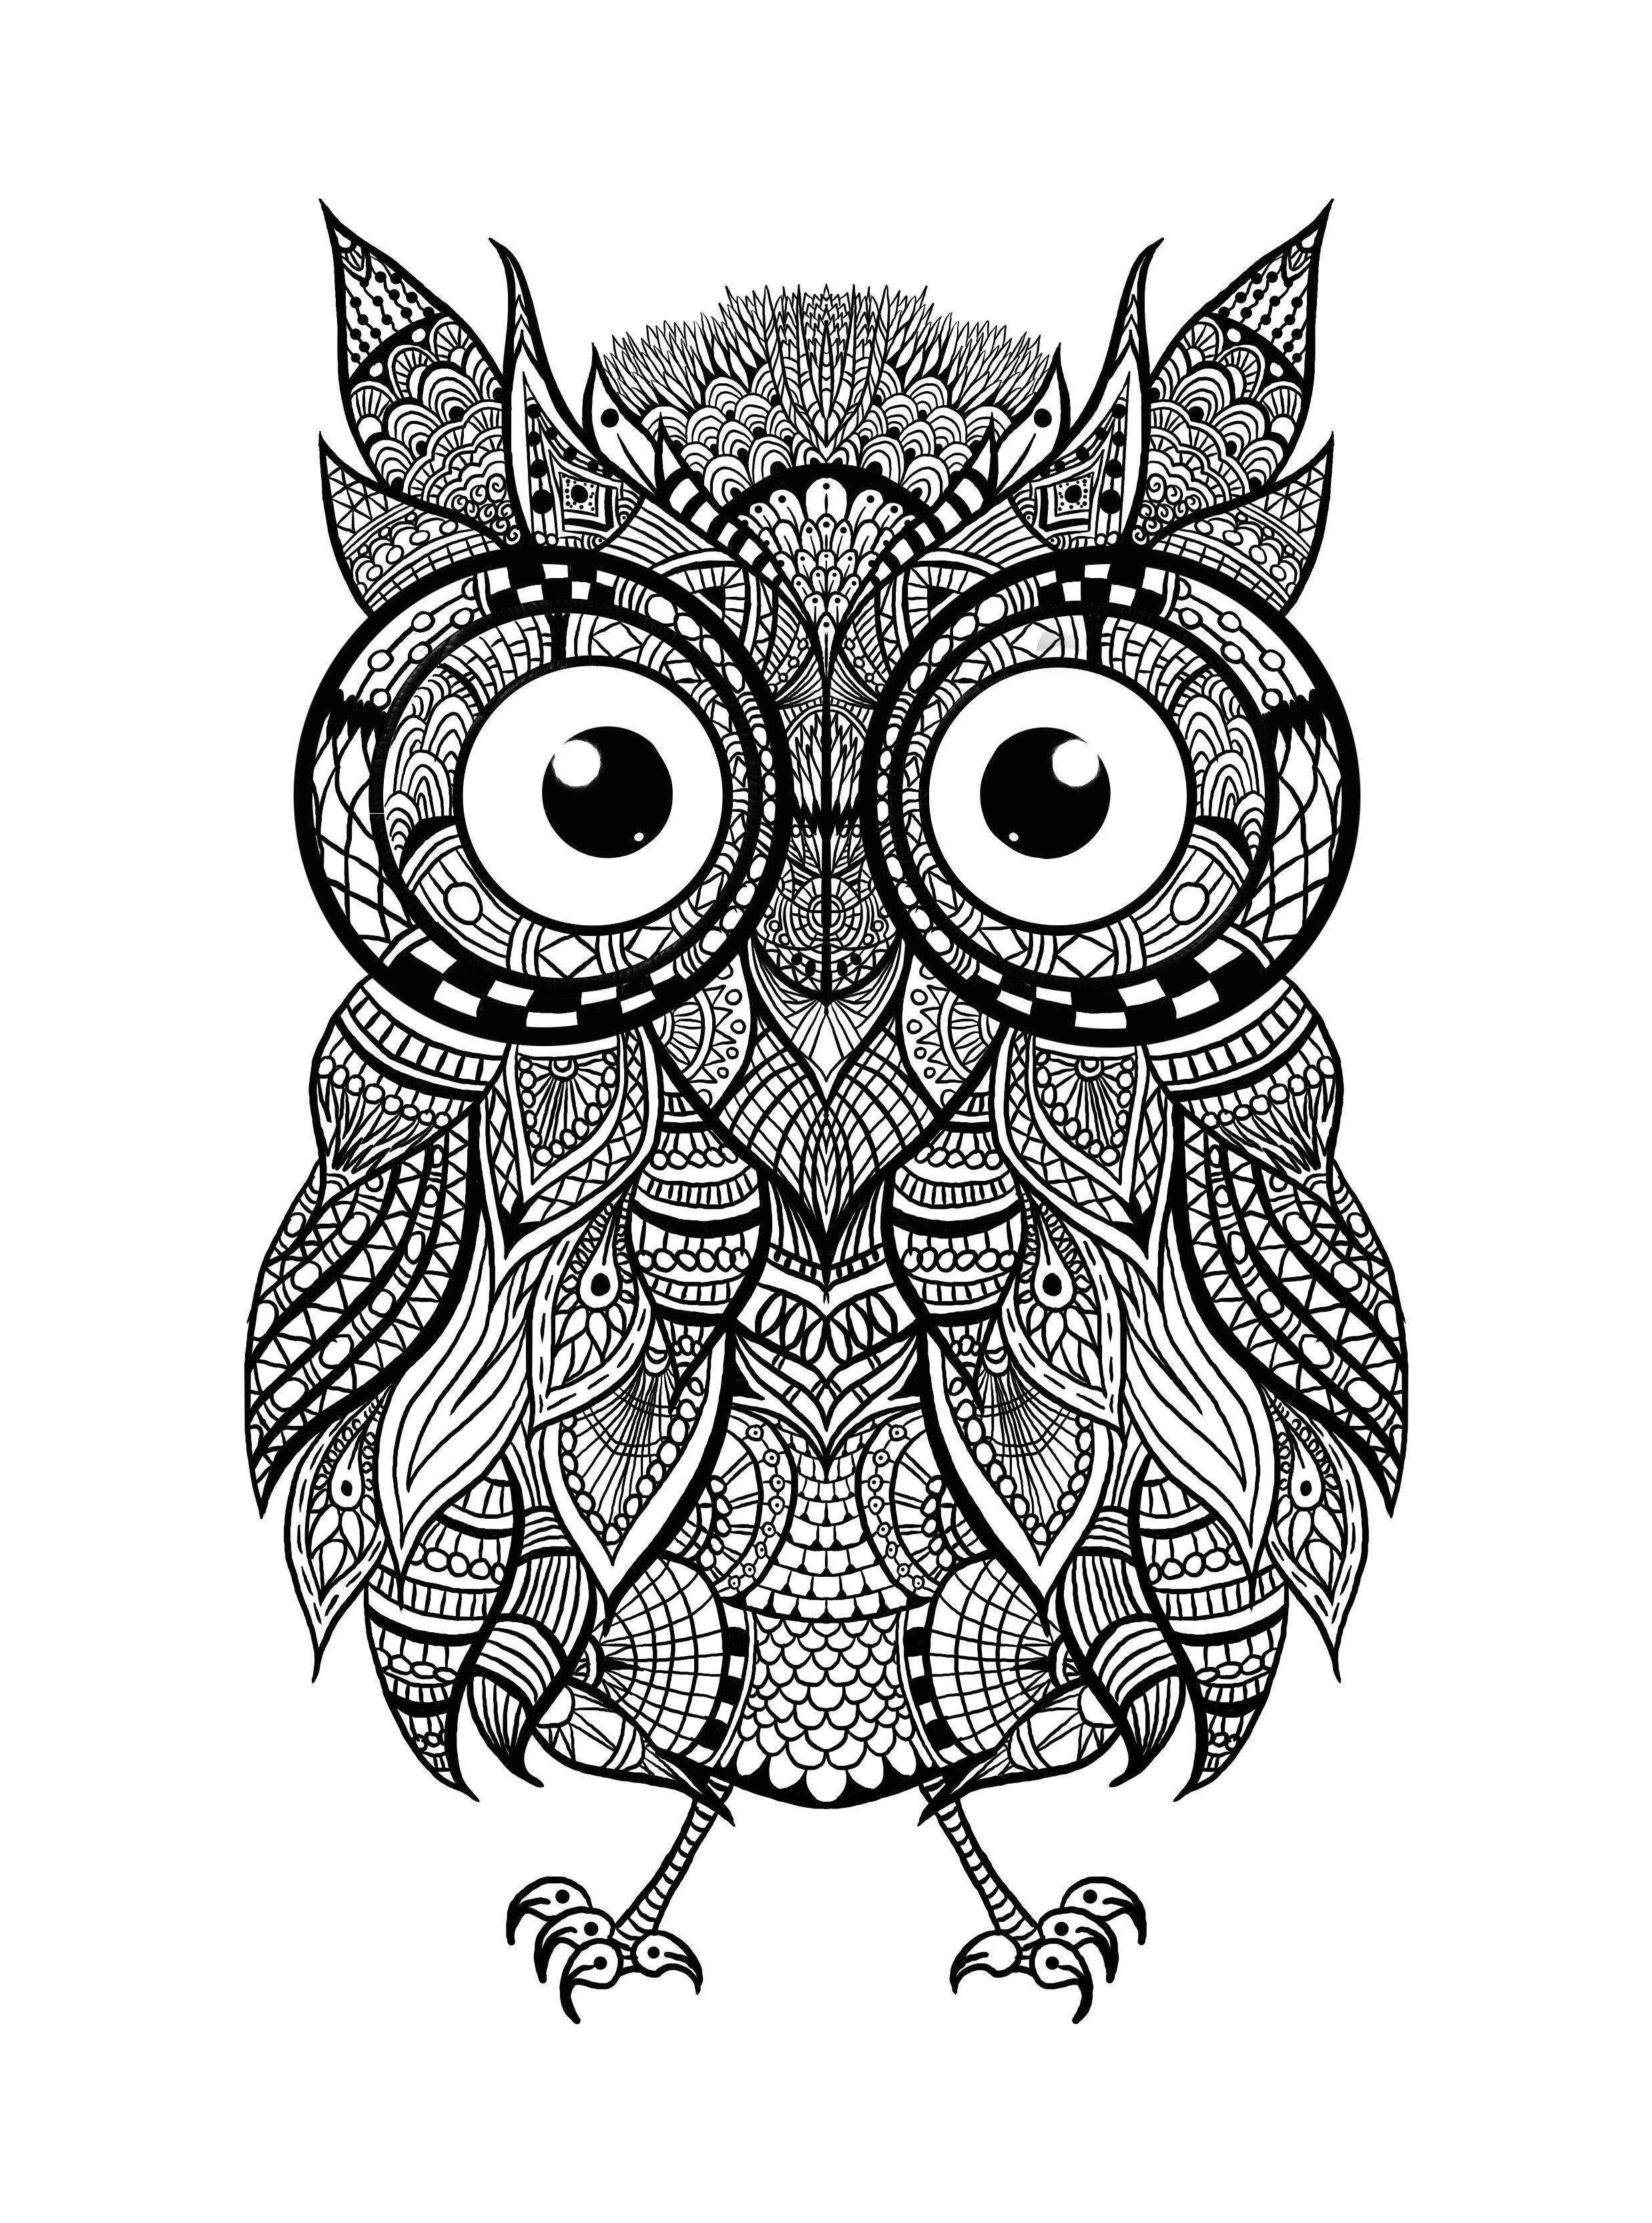 Best grown up coloring books - 78 Best Images About Adult Coloring Our Books On Pinterest Happenings At Midnight And Landscapes